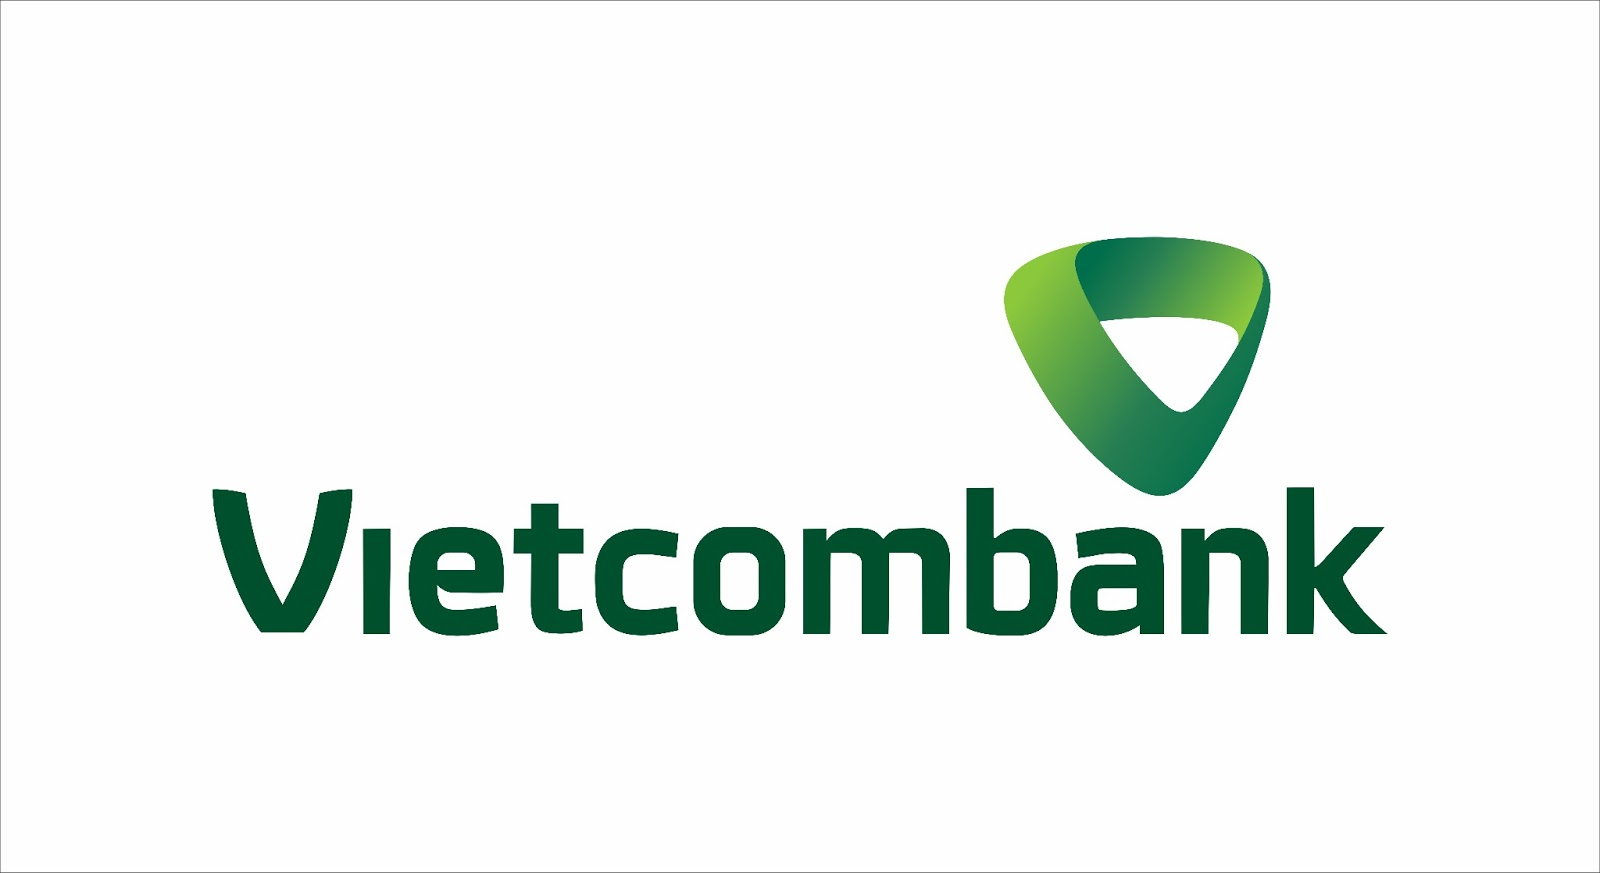 Description: http://www.abay.vn/Images/payment/bank-logo-VCB.gif